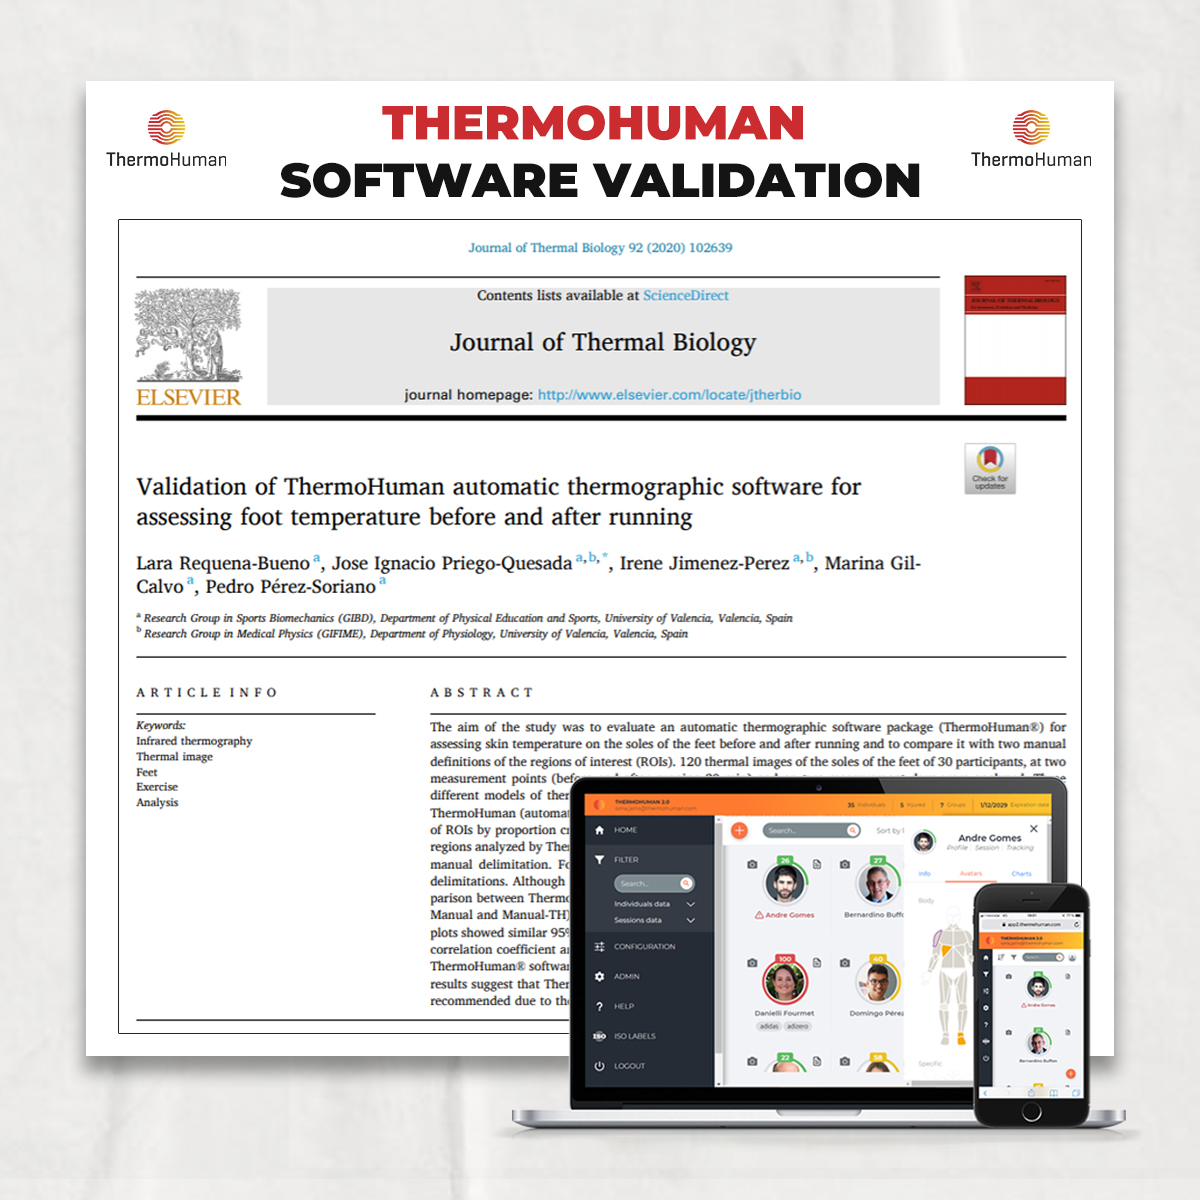 Scientific article about ThermoHuman software validation